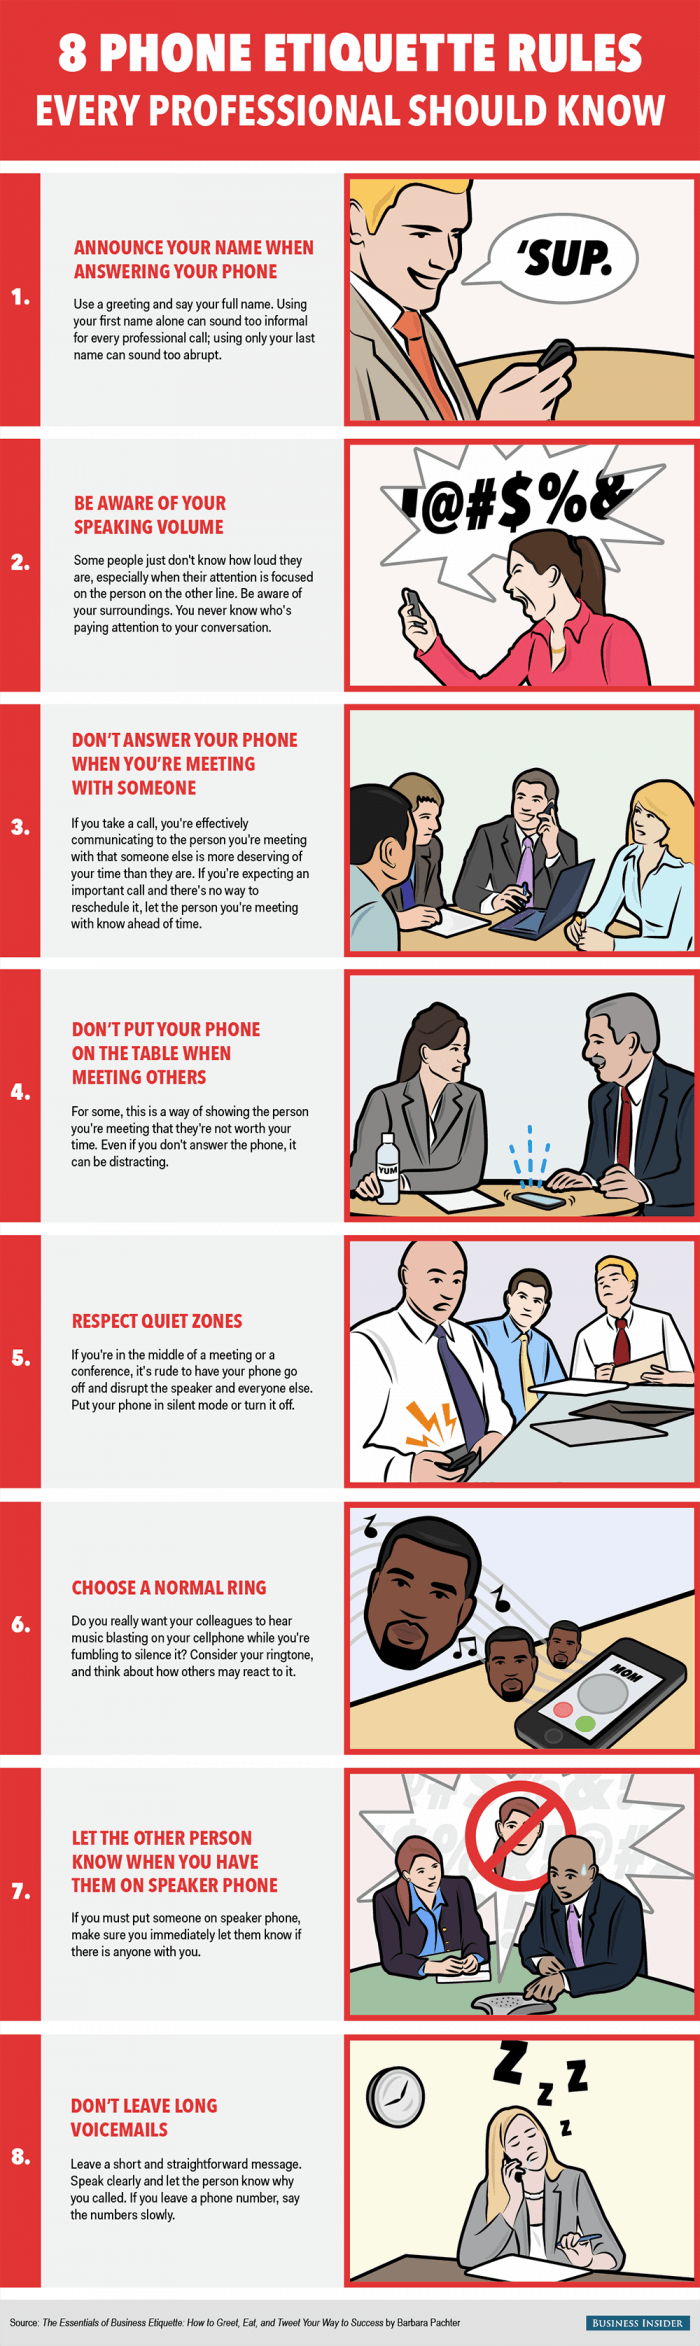 infographic-8-phone-etiquette-rules-every-professional-should-know